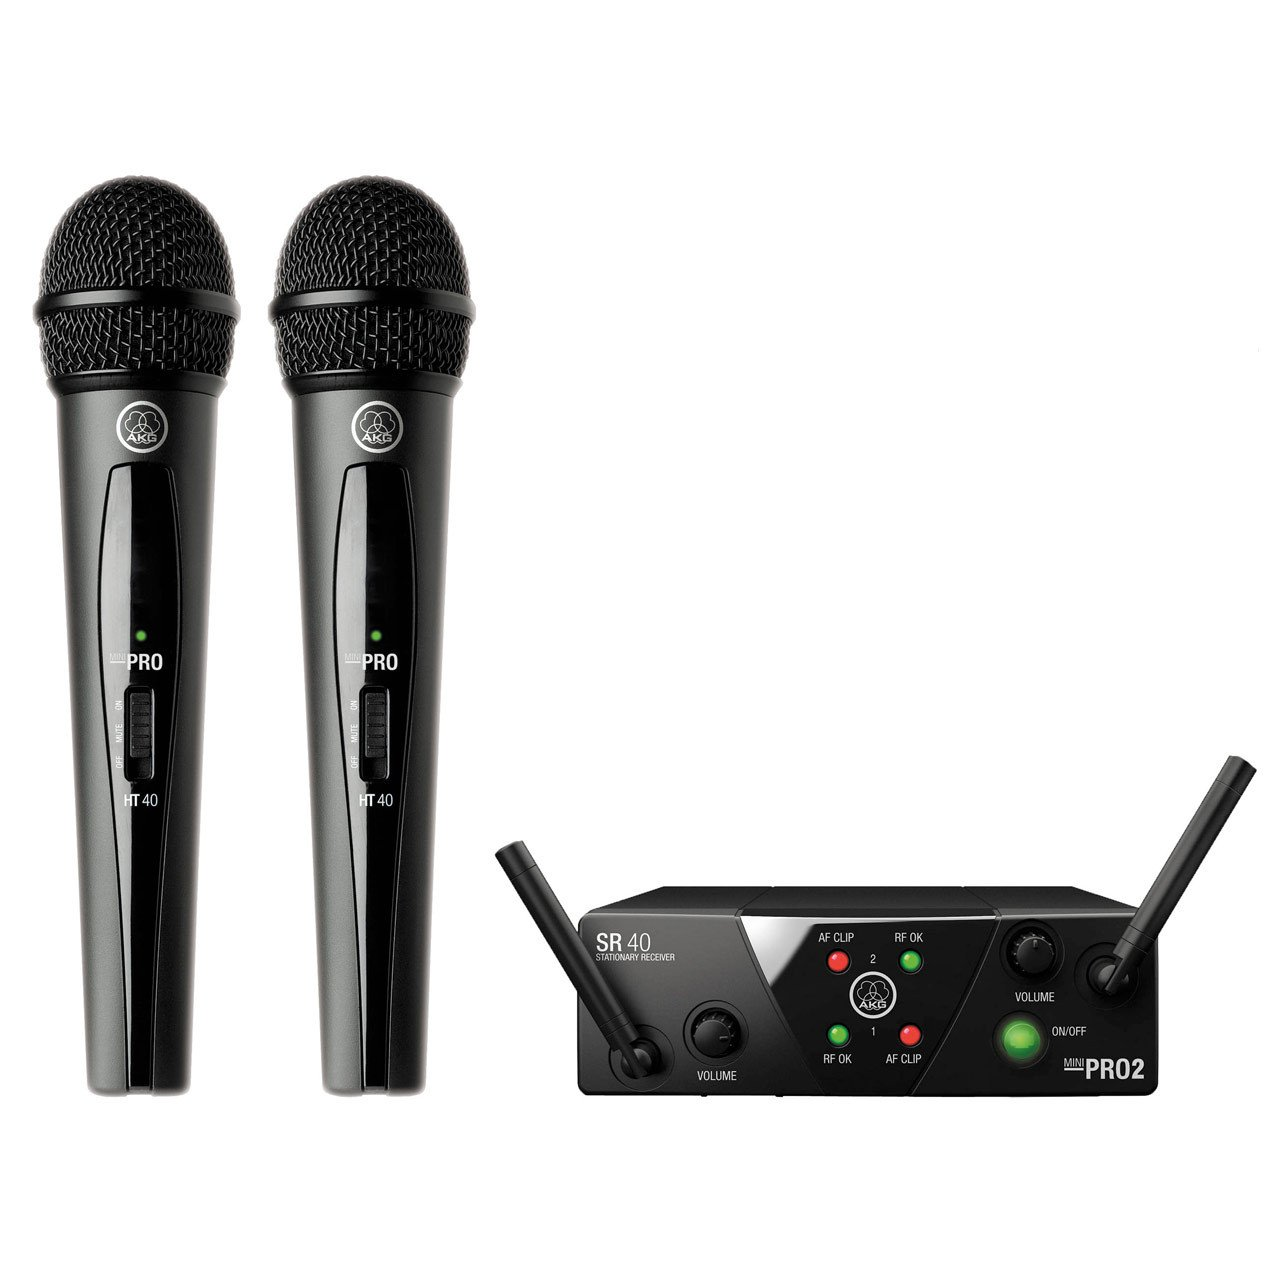 Wireless Systems - AKG WMS 40 PRO MINI 2 Dual Vocal Set Wireless Microphone System